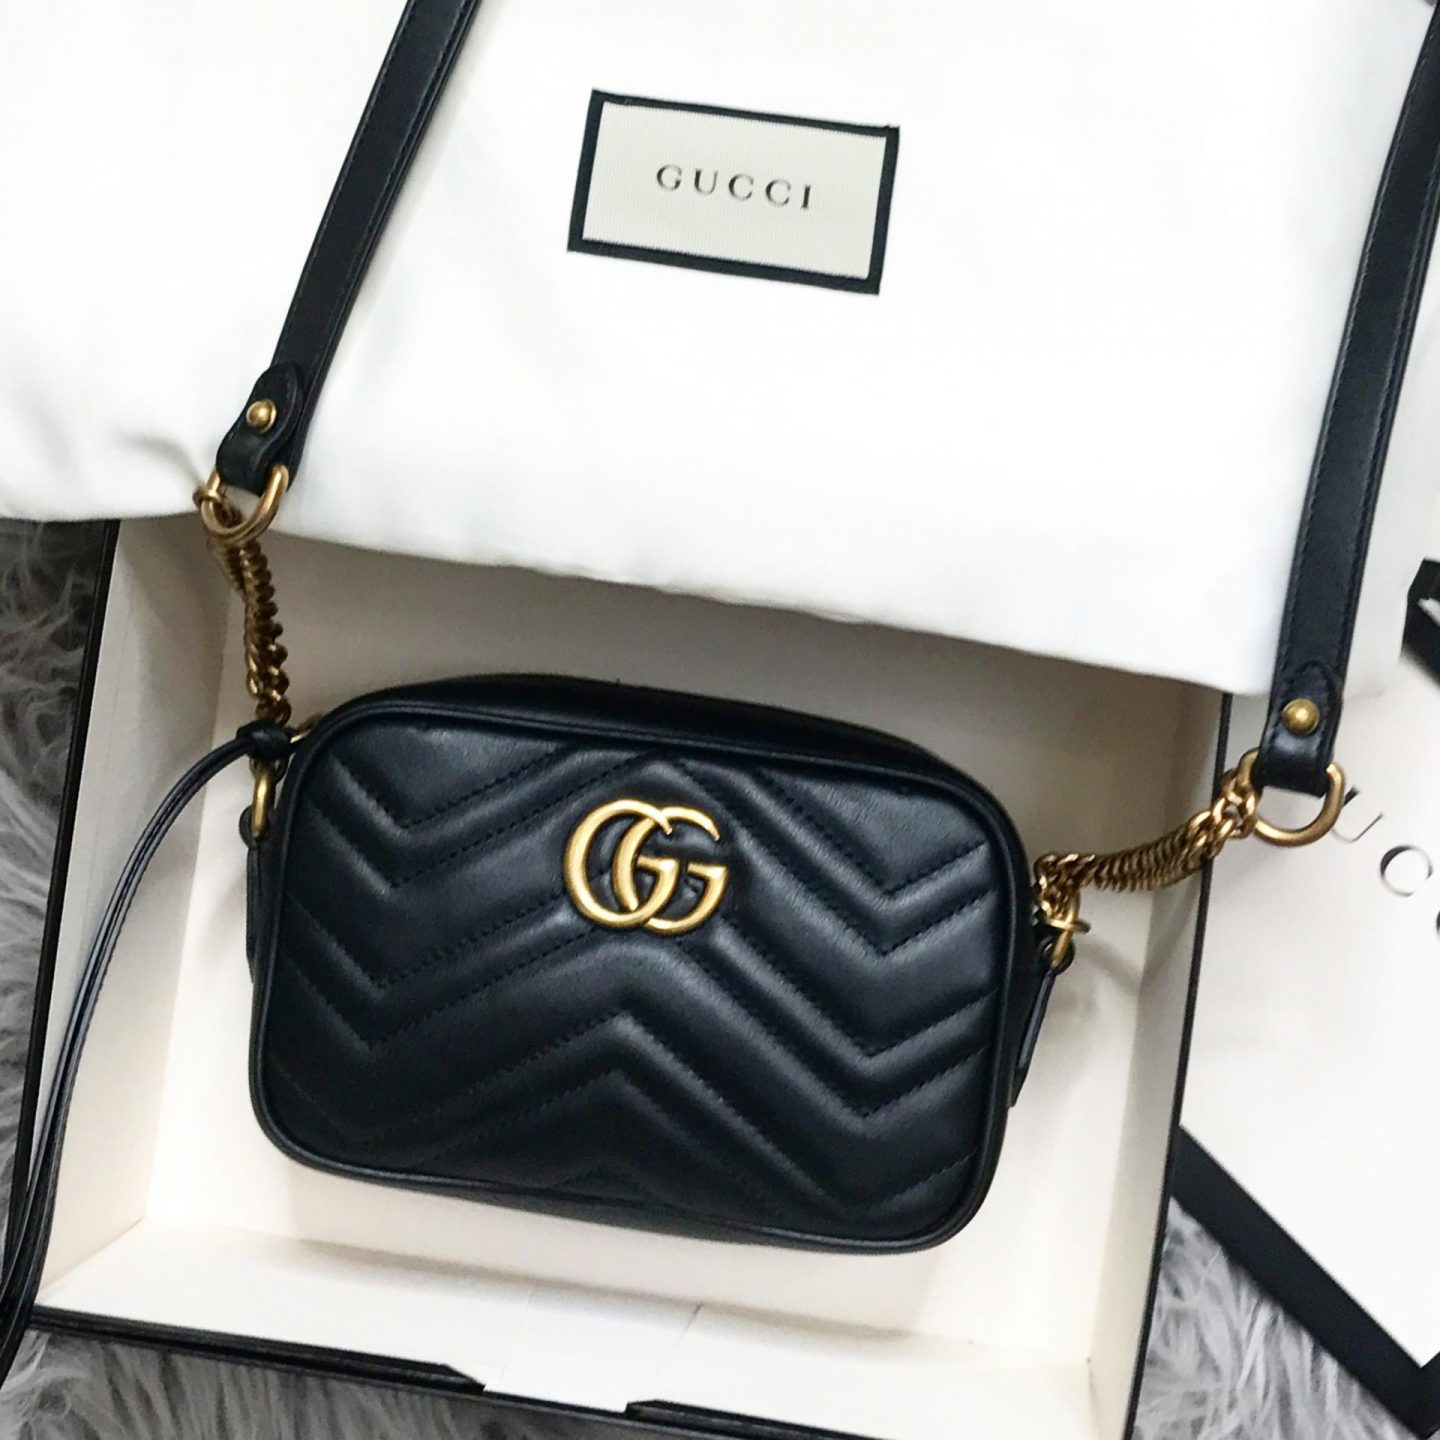 Gucci Marmont Matelassé Mini Bag Review